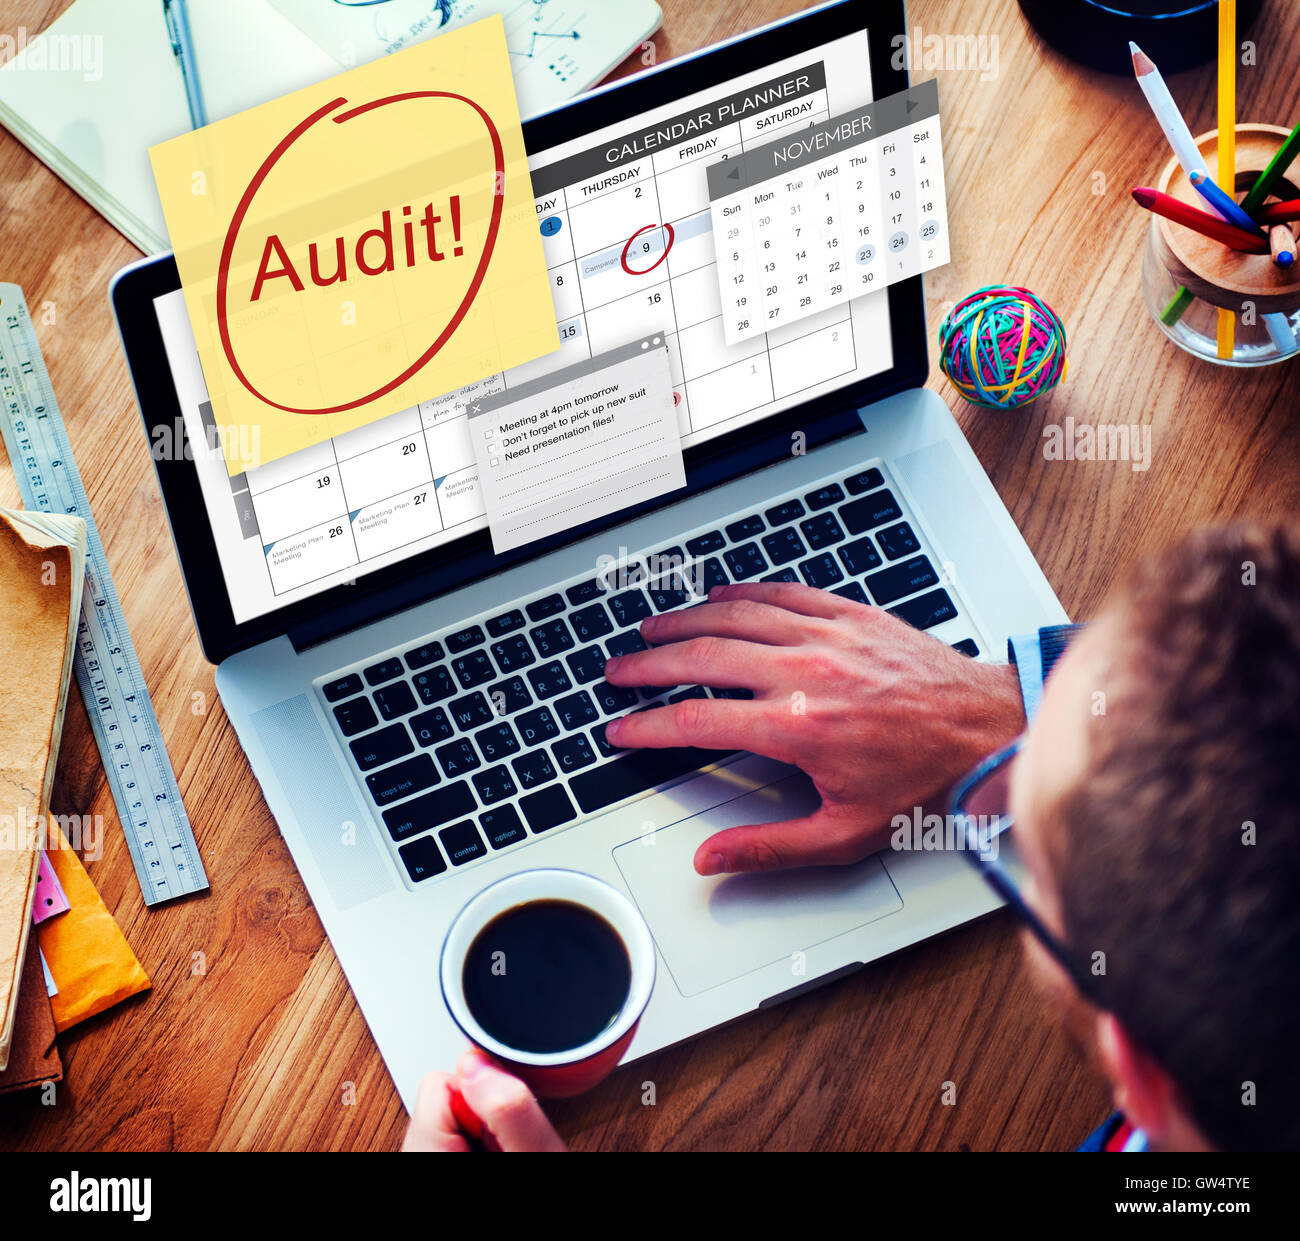 Audit Accounting Bookkeeping Credit Debt Finance Concept - Stock Image